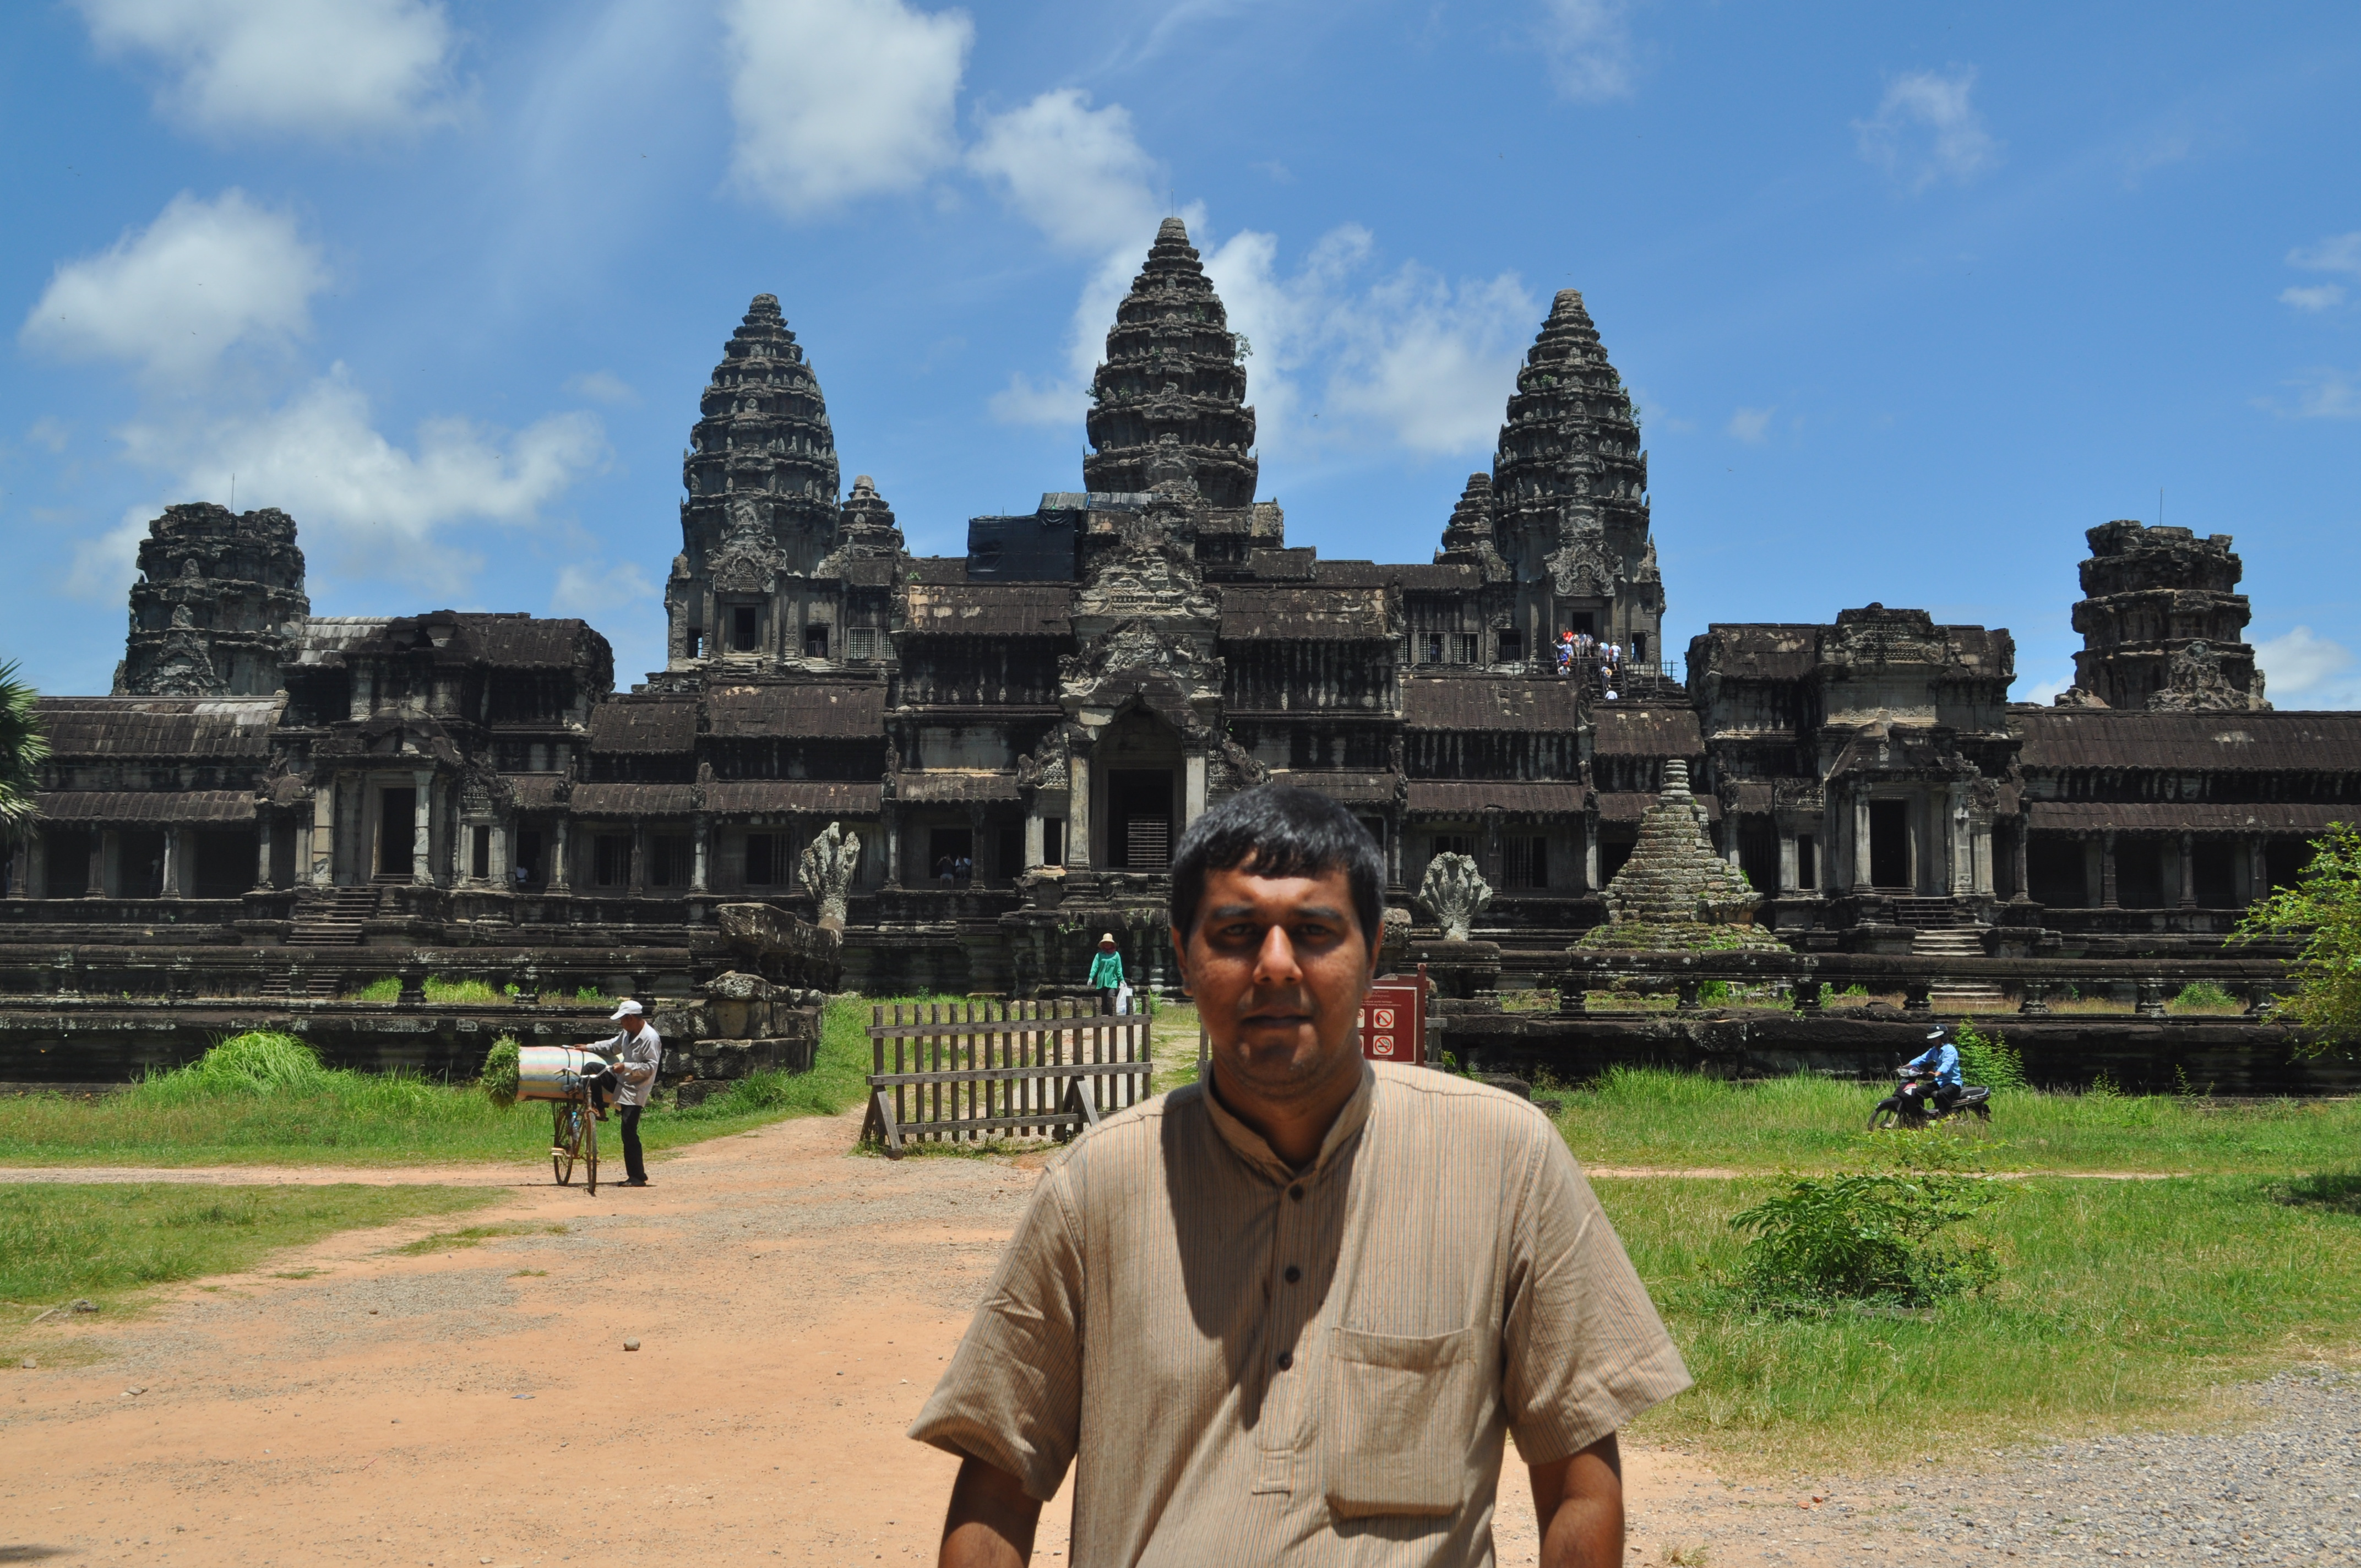 The sheer size and grandeur of the Angkor Wat is breathtaking. Just be there to see it.